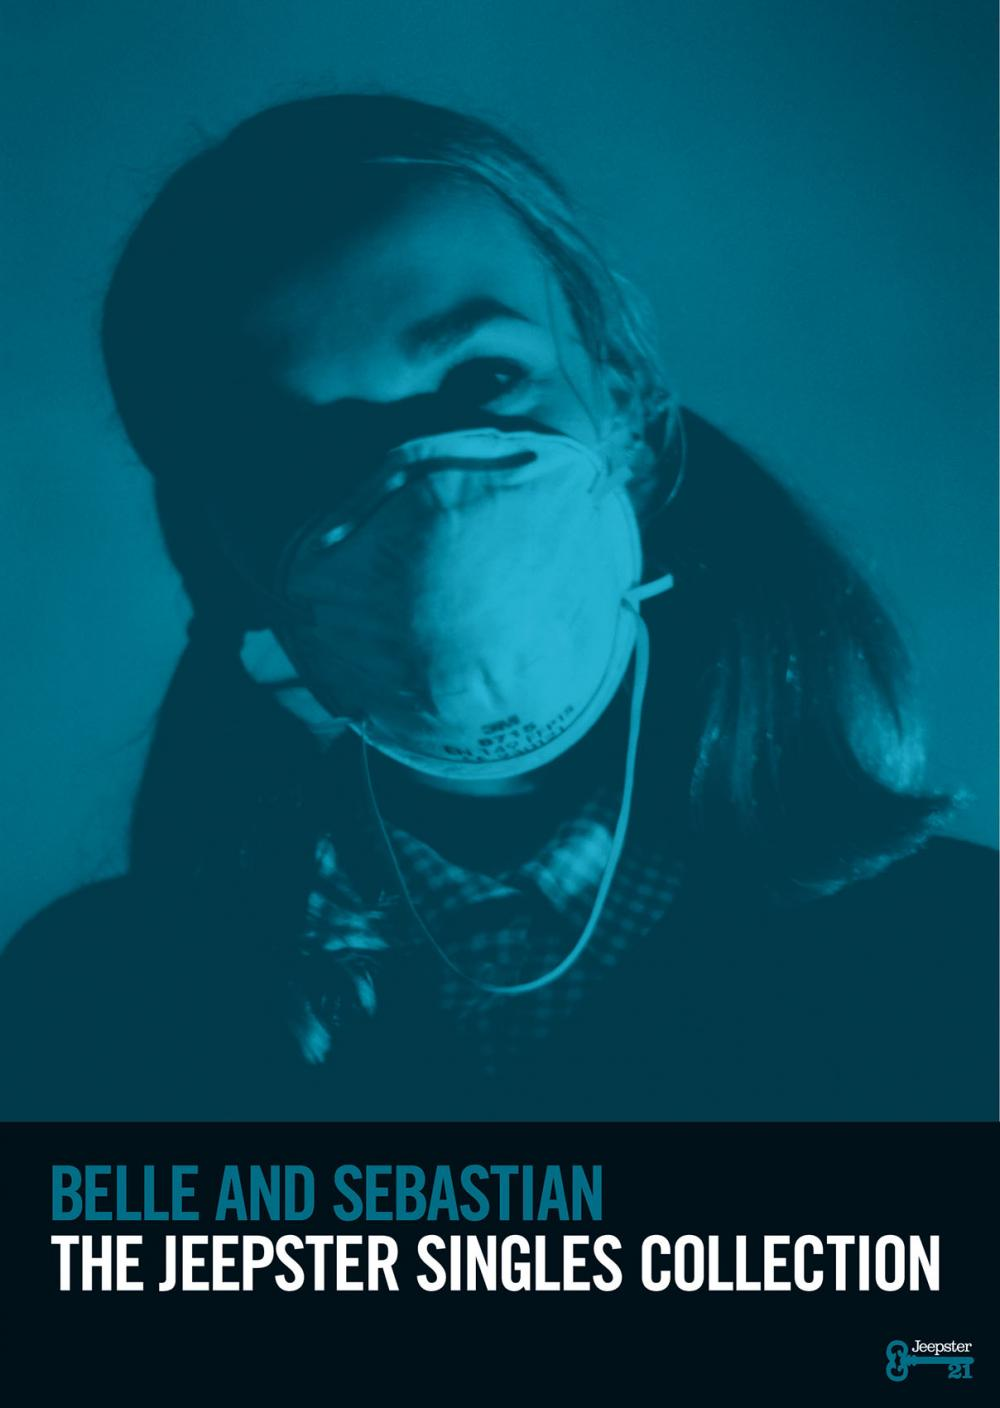 Belle and Sebastian - A2 Numbered Art Print - Limited Edition of 200